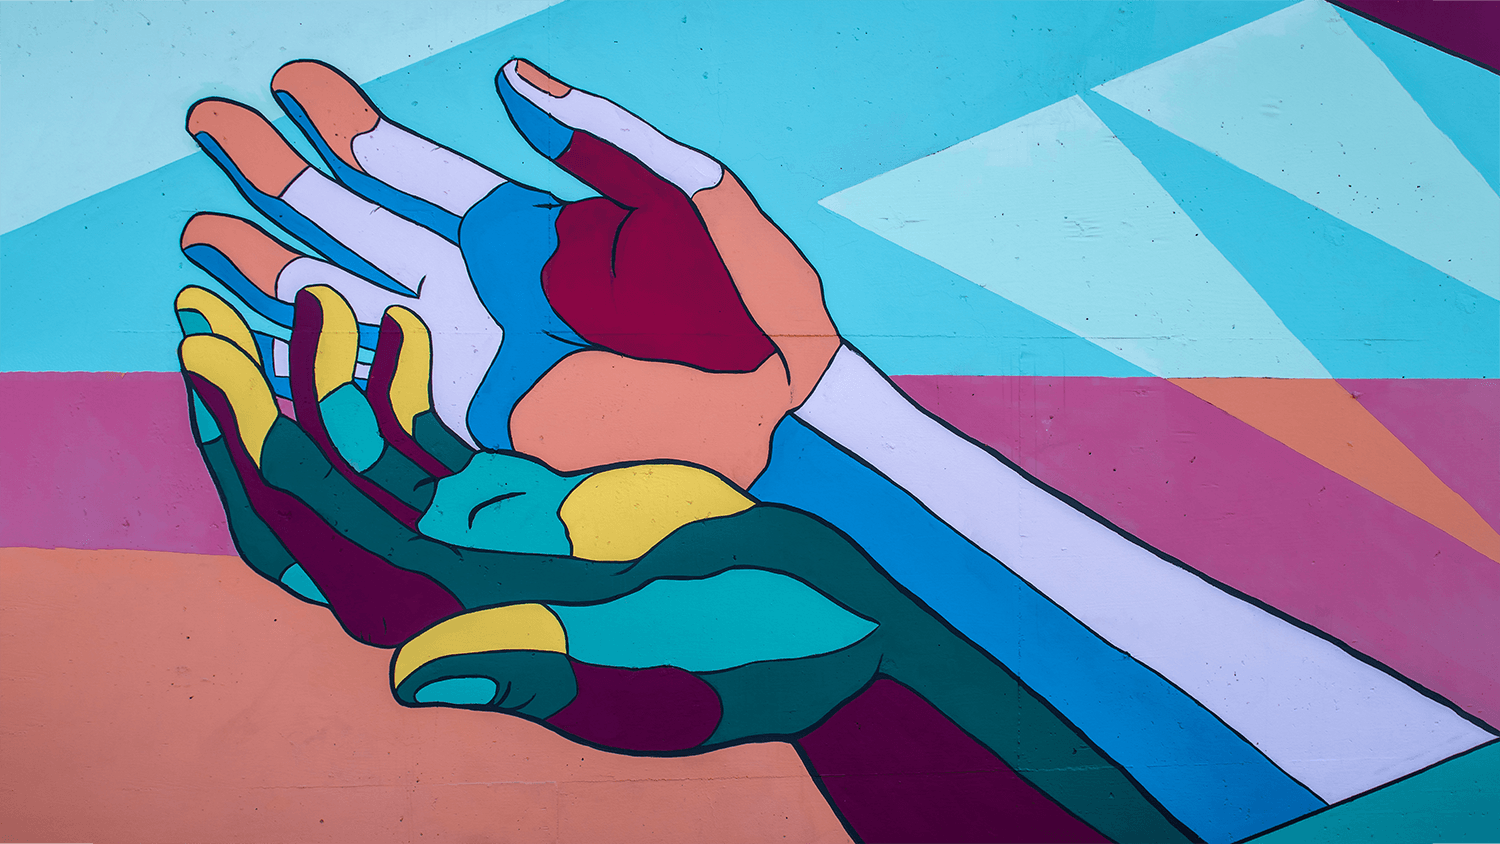 George Fox University students Annabelle Wombacher, Jared Mar, Sierra Ratcliff and Benjamin Cahoon collaborated on the mural in Newberg, Oregon, that shows three pairs of hands representing giving and generosity, receiving and gratitude, and embracing. The mural is part of the Yamhill County Mural Project. Photo by Tim Mossholder on Unsplash.